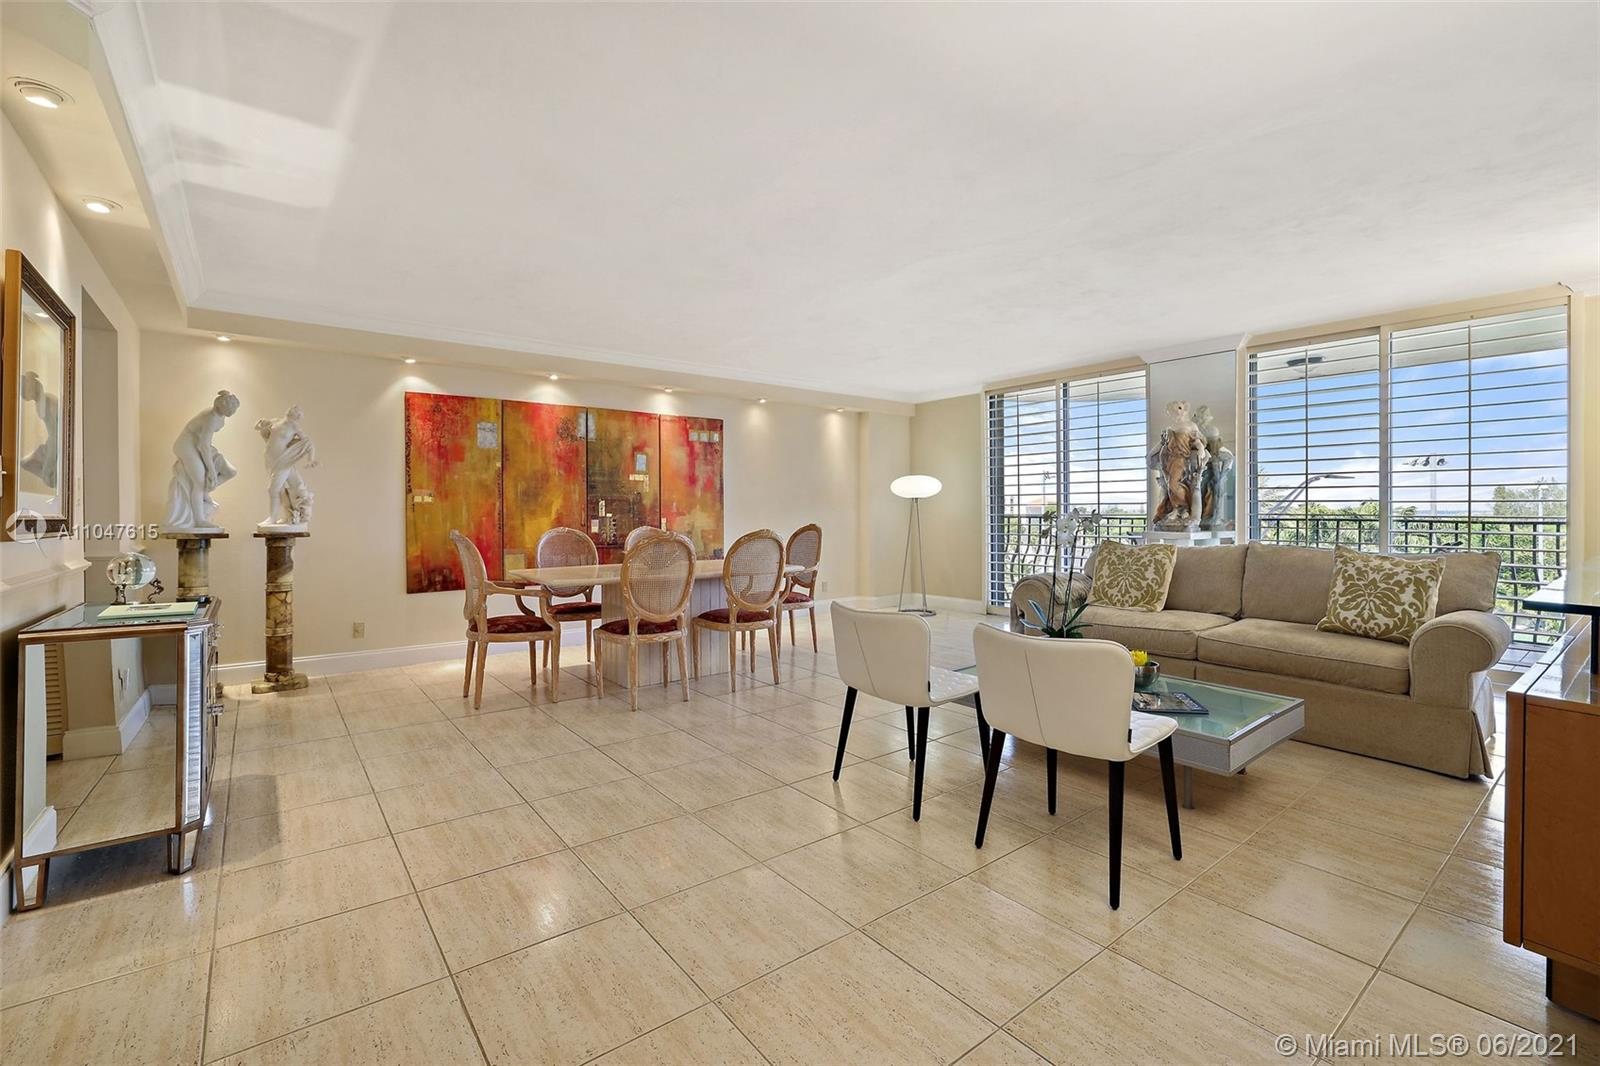 Surfside's best kept secret at Champlain Towers South! Designer owned Oceanfront NW corner condo, full of light & great attention to detail. Facing the bay & lush skyline of Surfside w/2 balconies.  Unit features: plantation shutters, oversized bedrooms, multiple & substantial closets, spacious bathrooms w/walk-in showers & roman tub; Eat-in kitchen easily be opened to living spaces. Addtl storage unit, Valet & assigned covered self parking & 24HR  concierge/security. Unique Opportunity in boutique  Bldg undergoing lux upgrades adjacent to award winning Renzo Piano's 87 Park. Enjoy sunrise/sunset Boardwalk from your new home to Bal Harbor to SoBe & to casual/fine restaurants + all the exclusive shopping. Located across the street to Surfside tennis center & soon renovated North Shore Park!